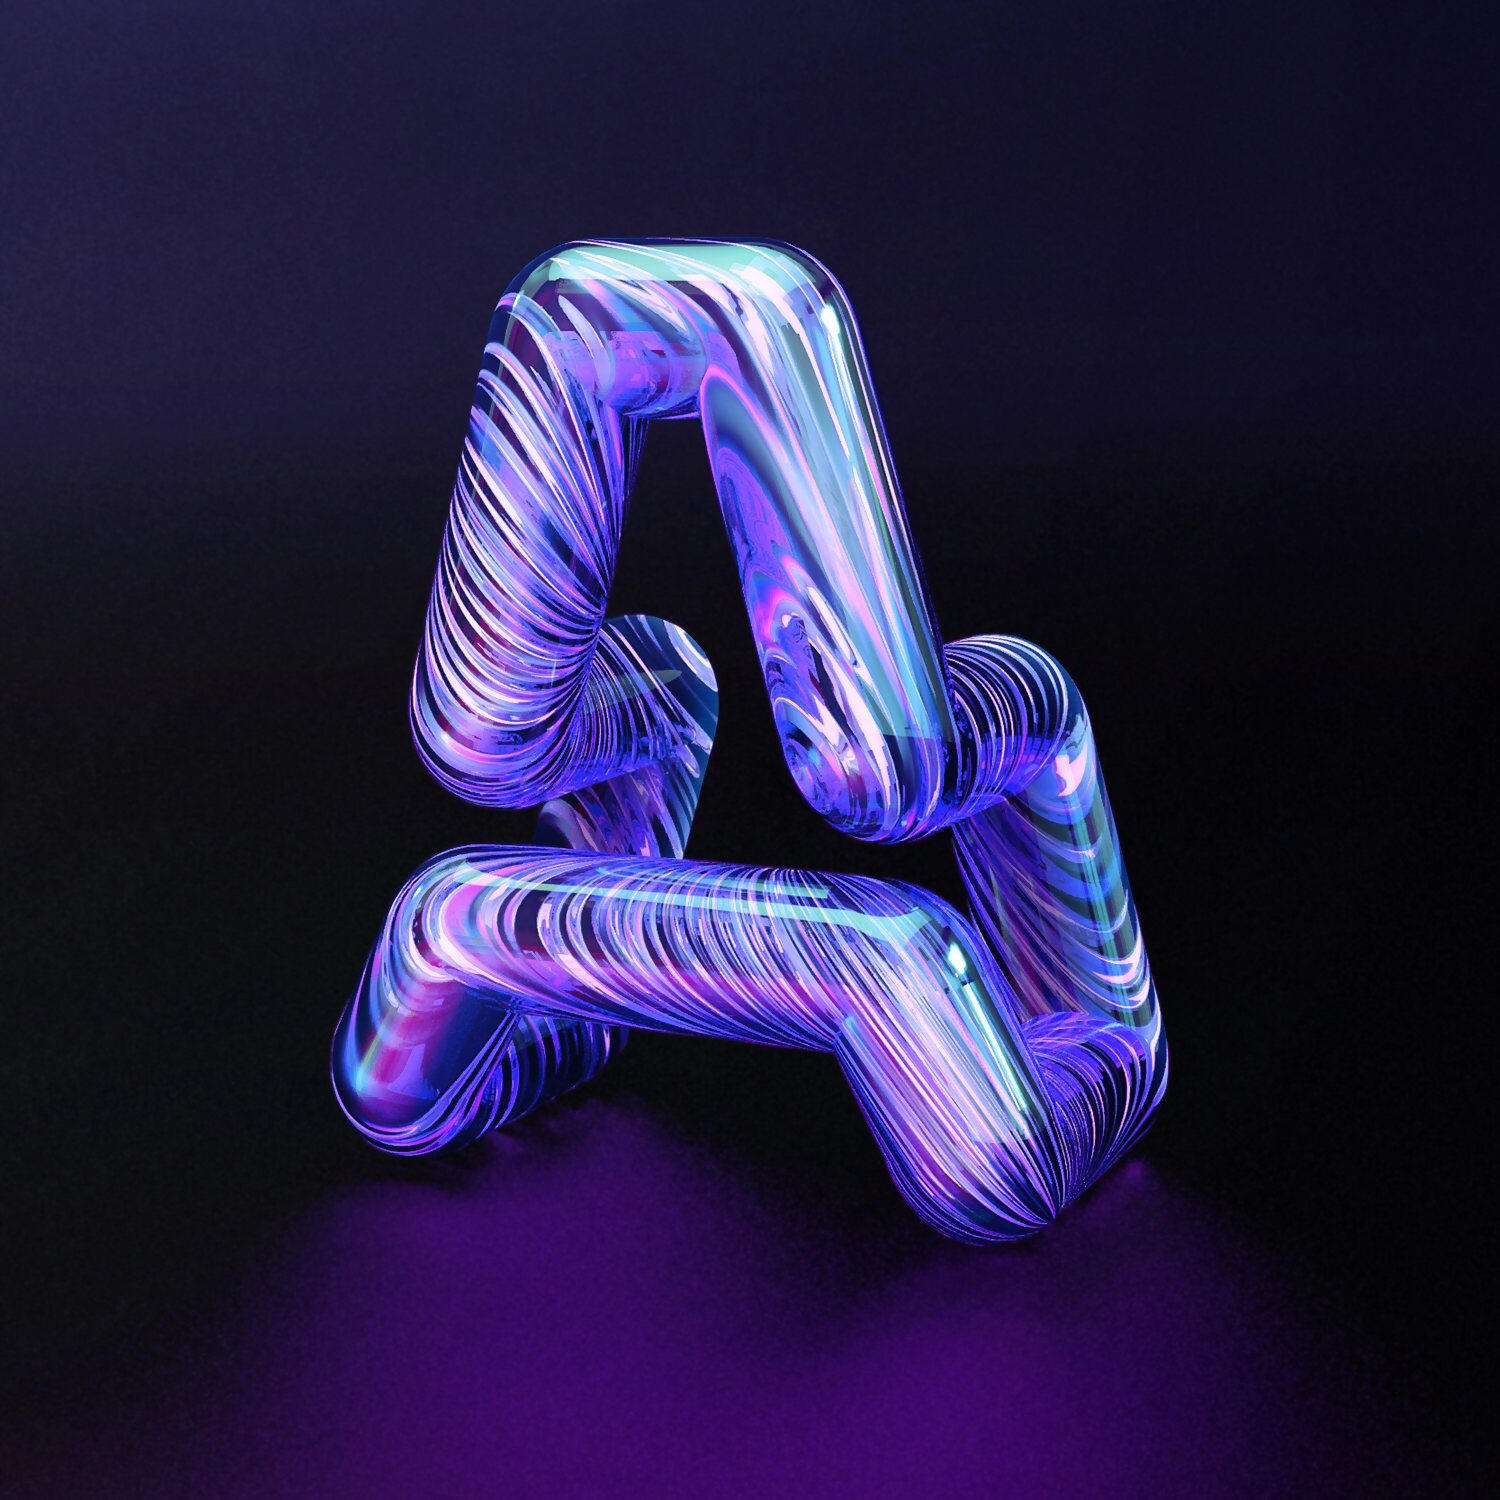 36 Days of Type 2018 - 3D letter A visual.